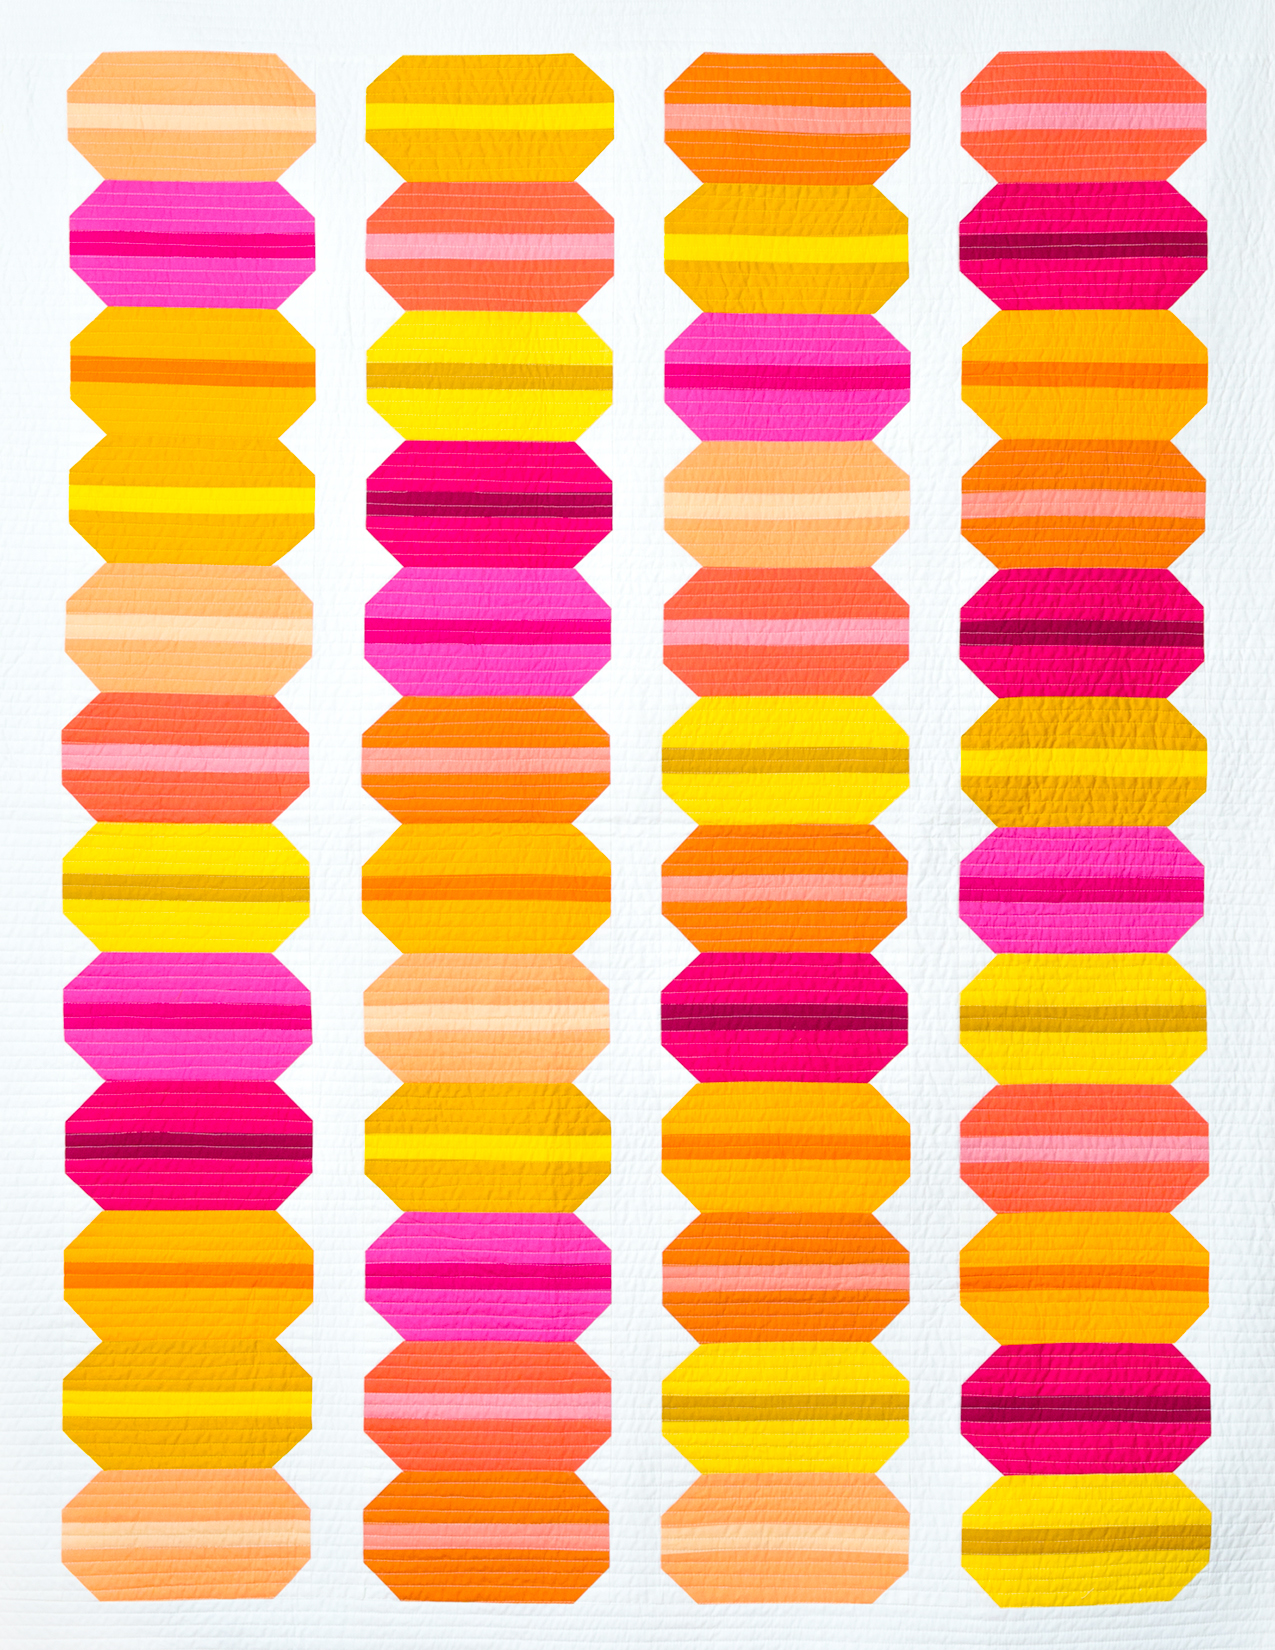 Modern-Handcraft-French-Macaron-Quilt-Cover-No-Text.jpg